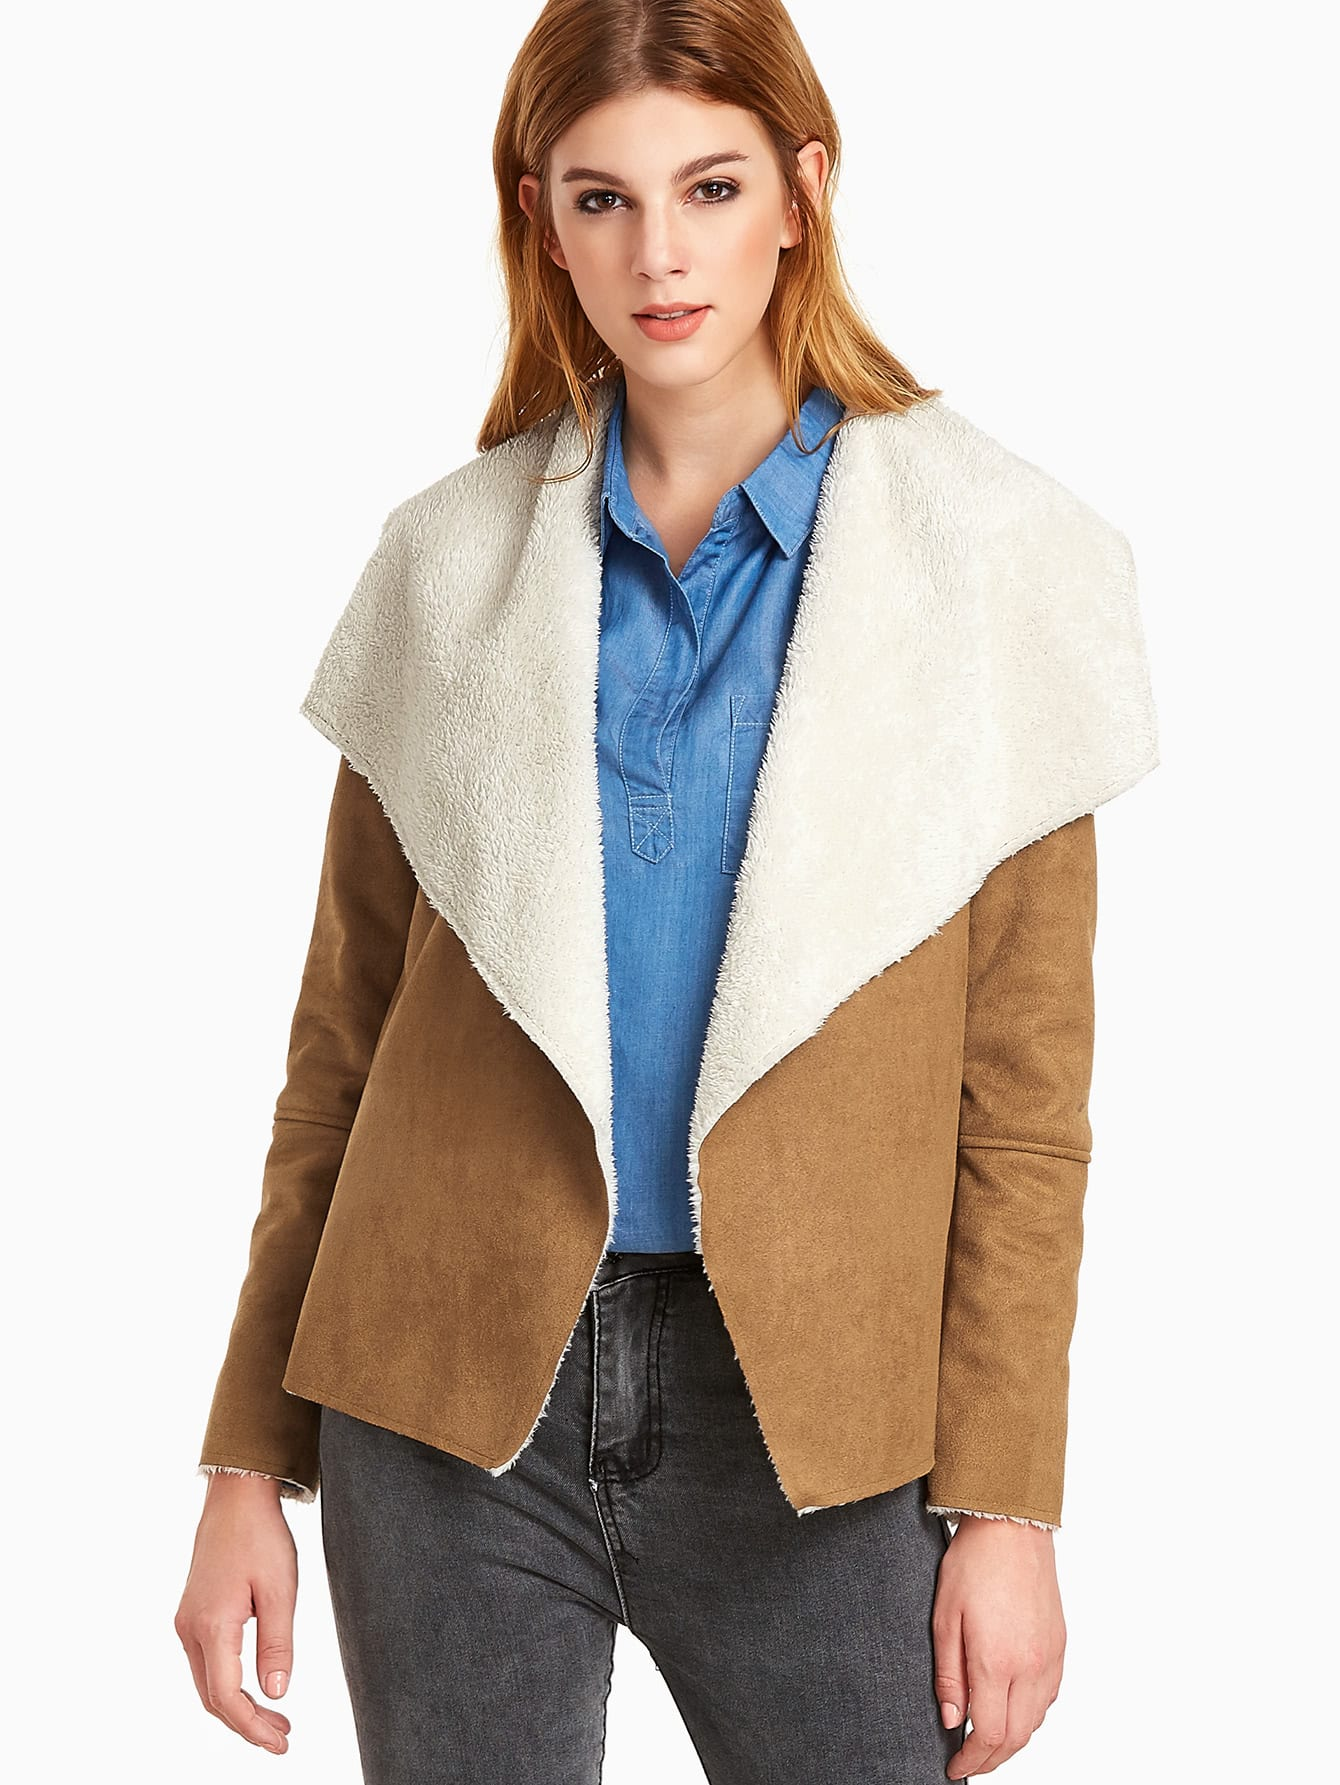 White Camel Suede Casual Shawl Collar Short Winter Color Block Fabric has no stretch Jackets.